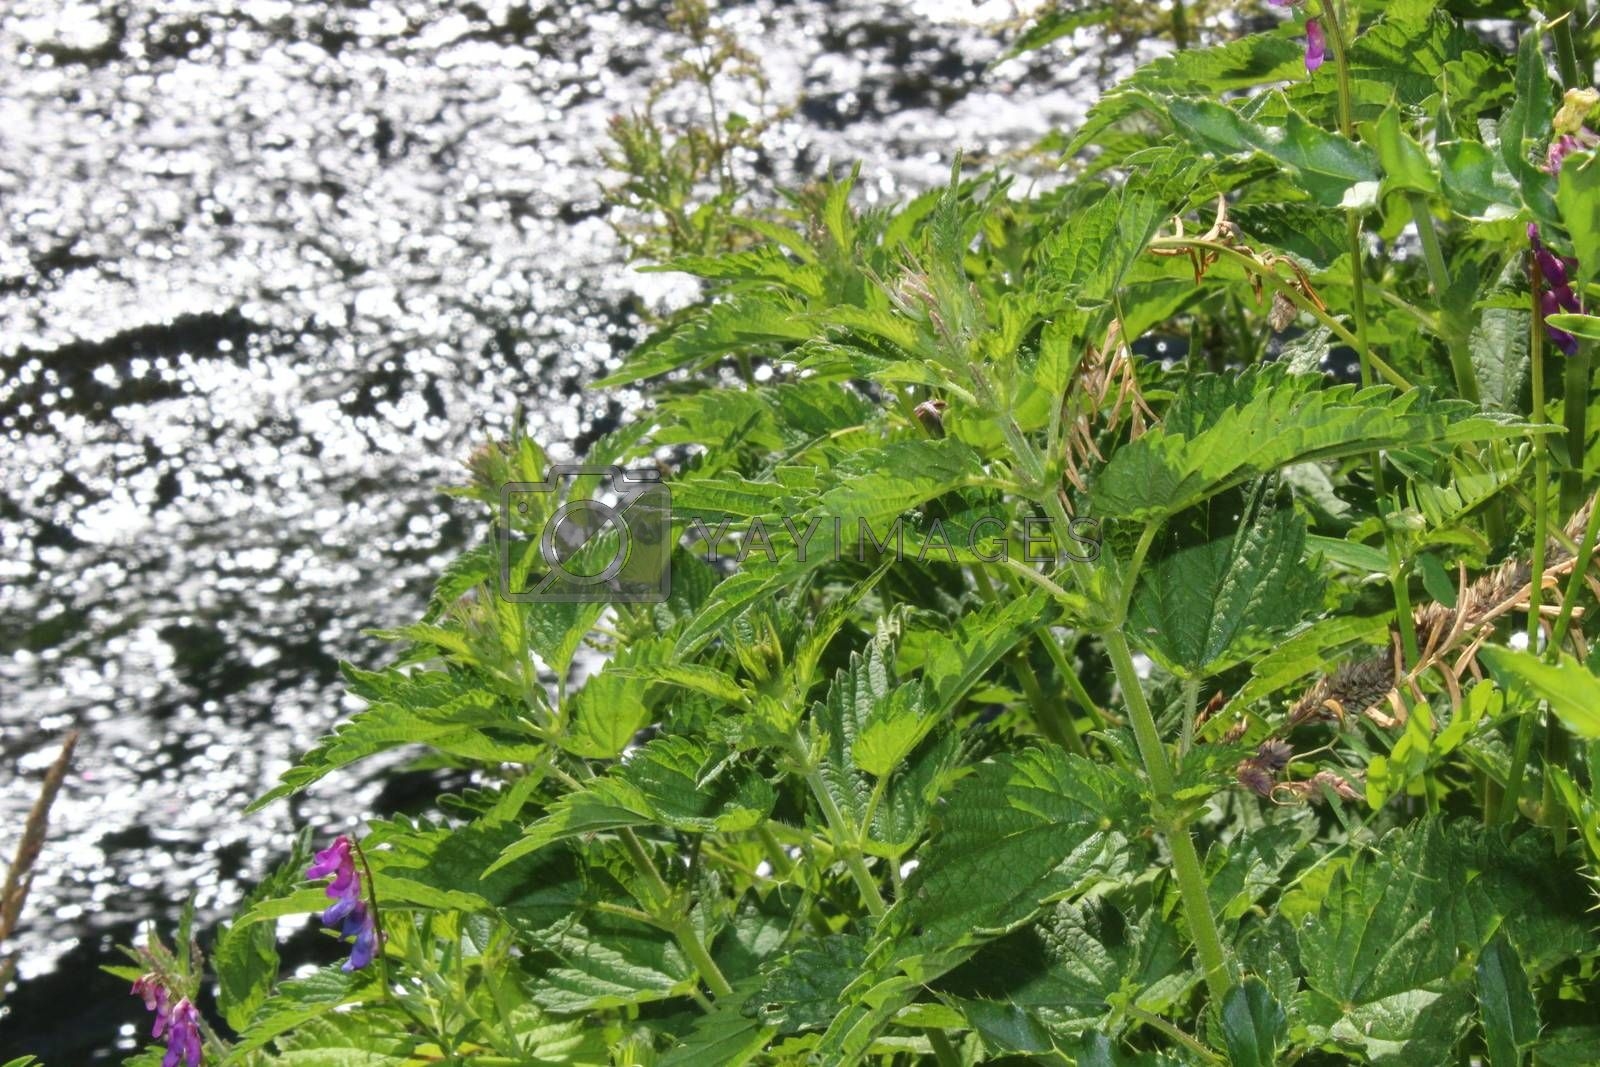 Royalty free image of stinging nettles on a river by martina_unbehauen